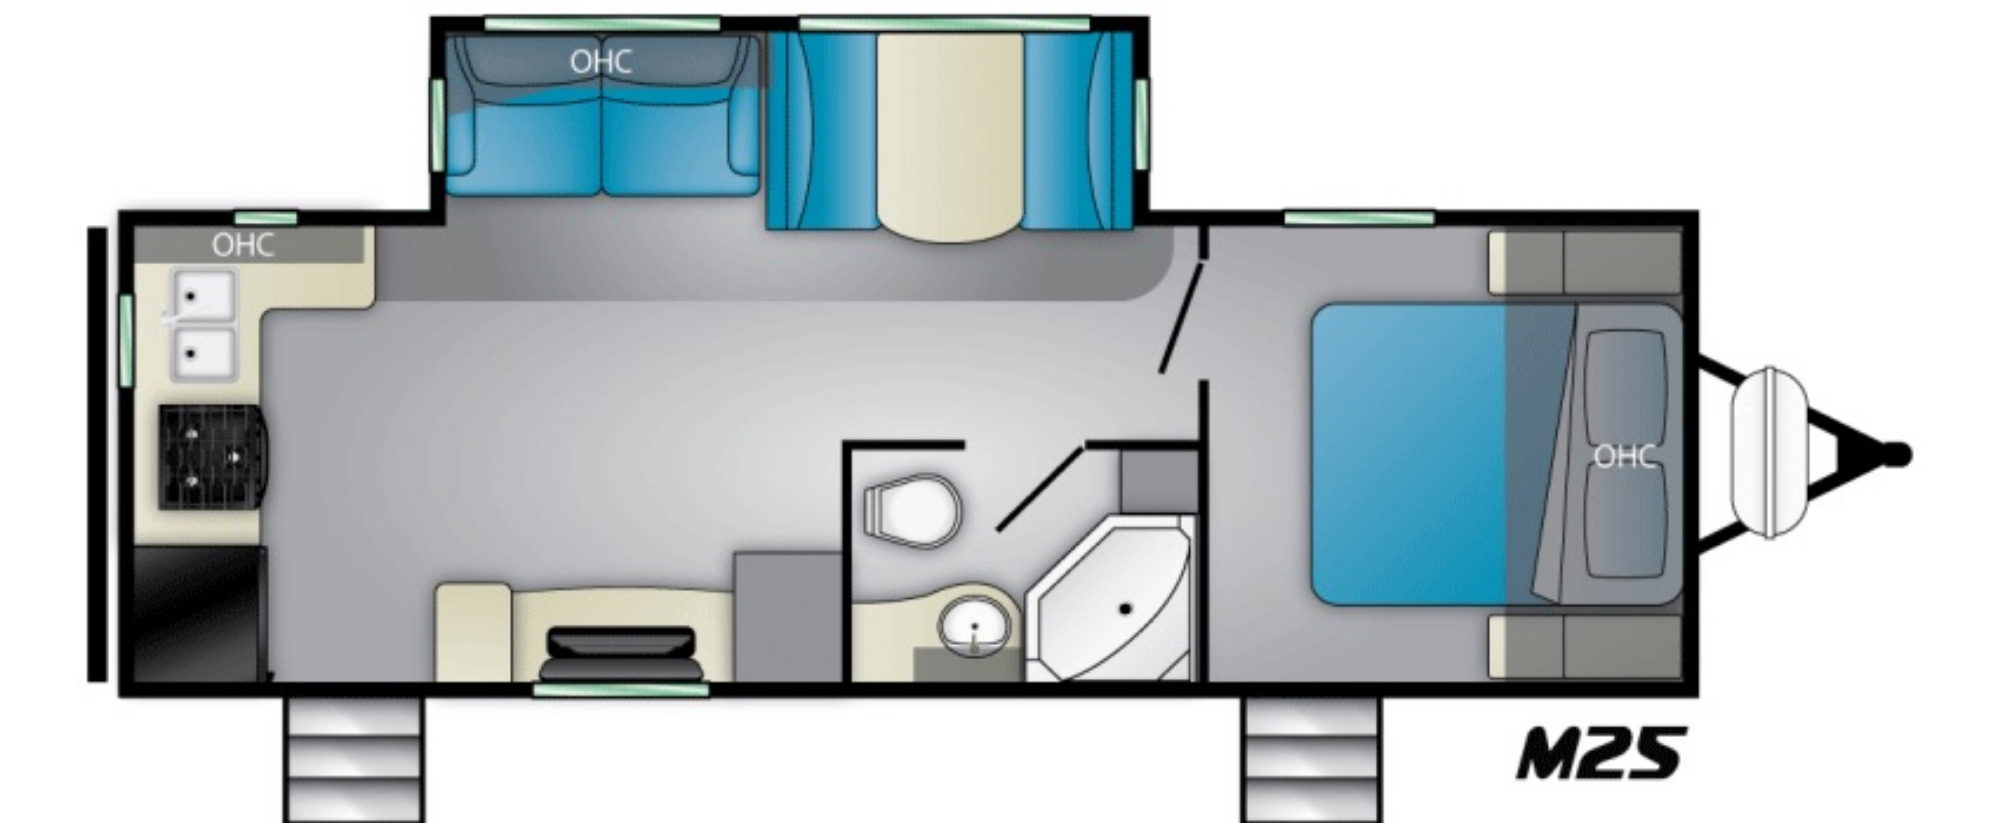 View Floor Plan for 2021 HEARTLAND MALLARD M25